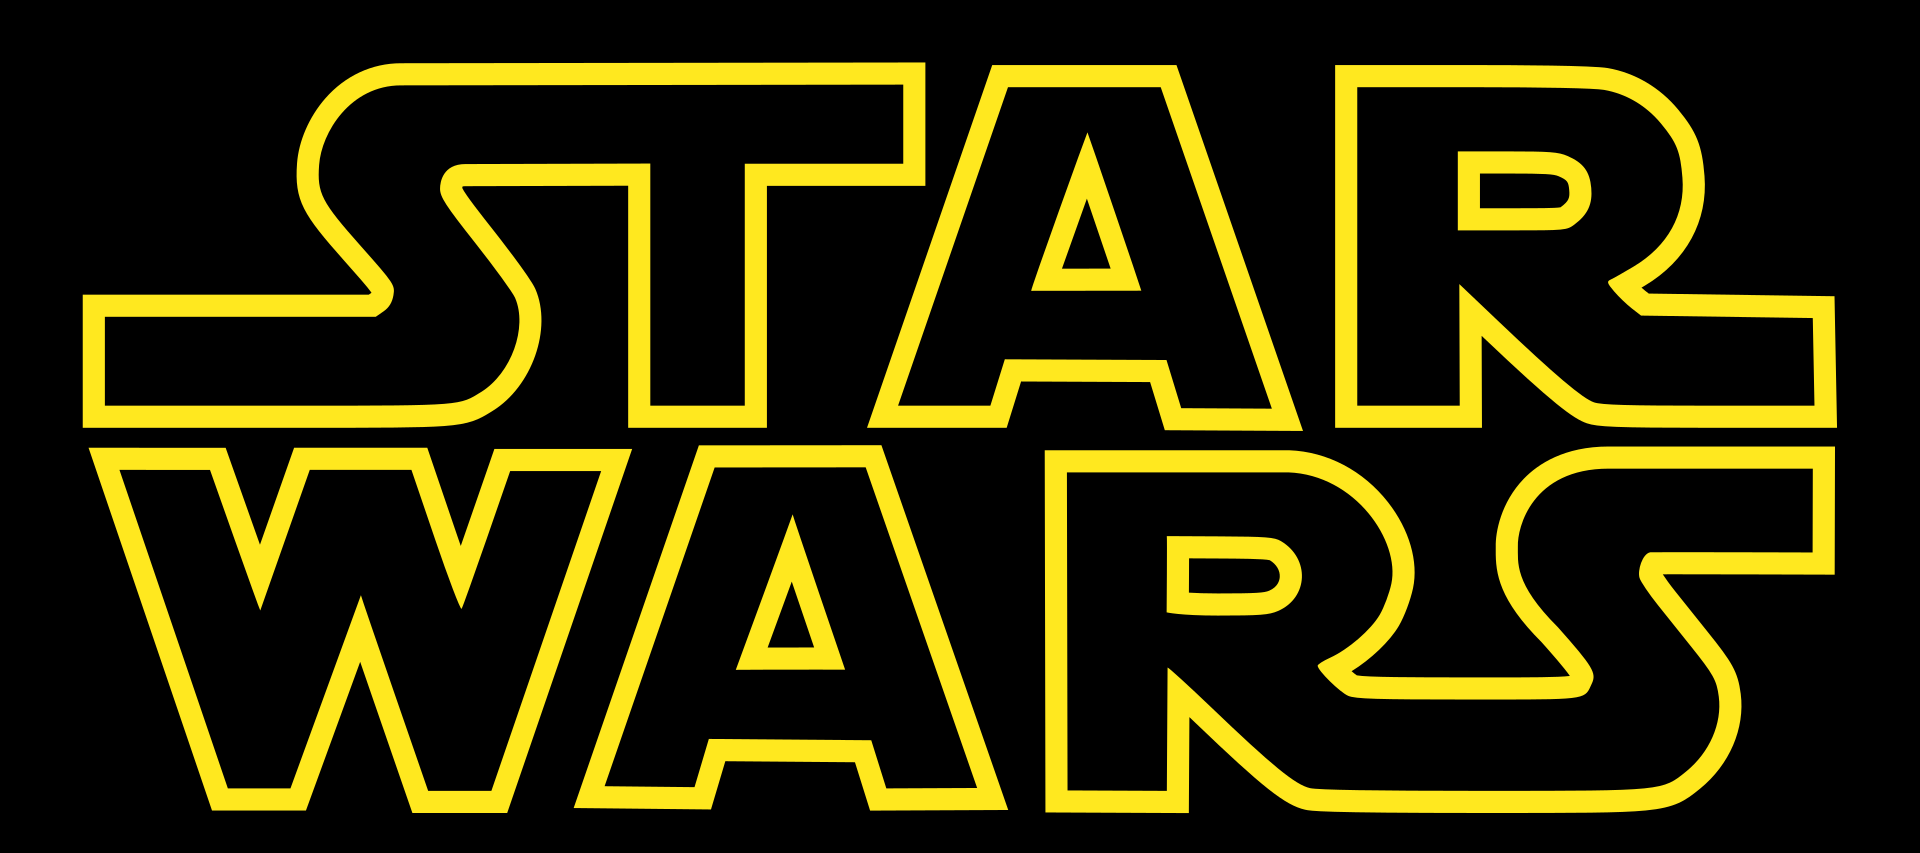 [Topic Tuesday] Star Wars: May the fourth be with you